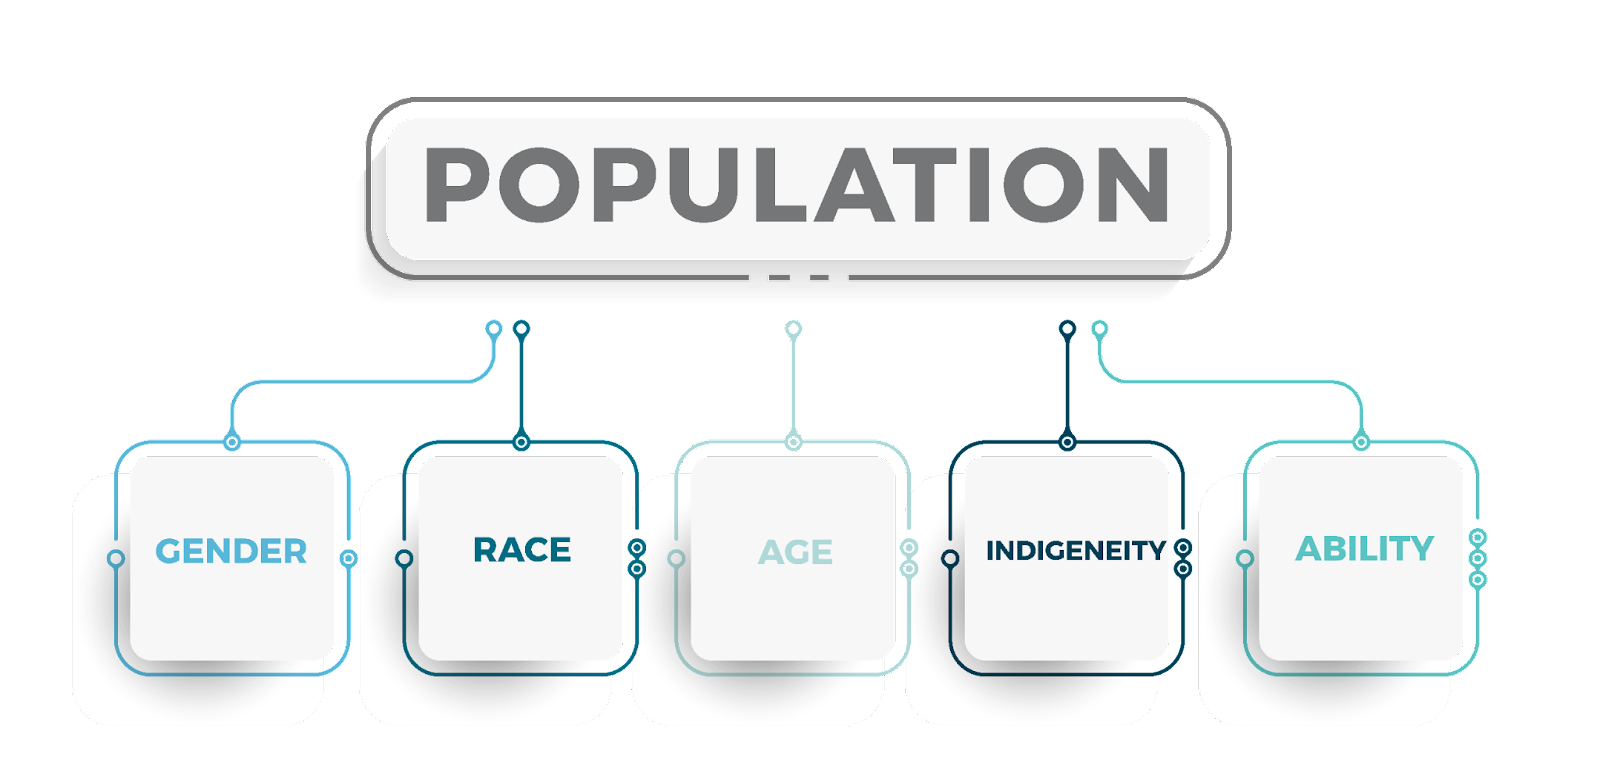 An infographic with the heading population and then subgroups of gender, race, age, indigeneity and ability.